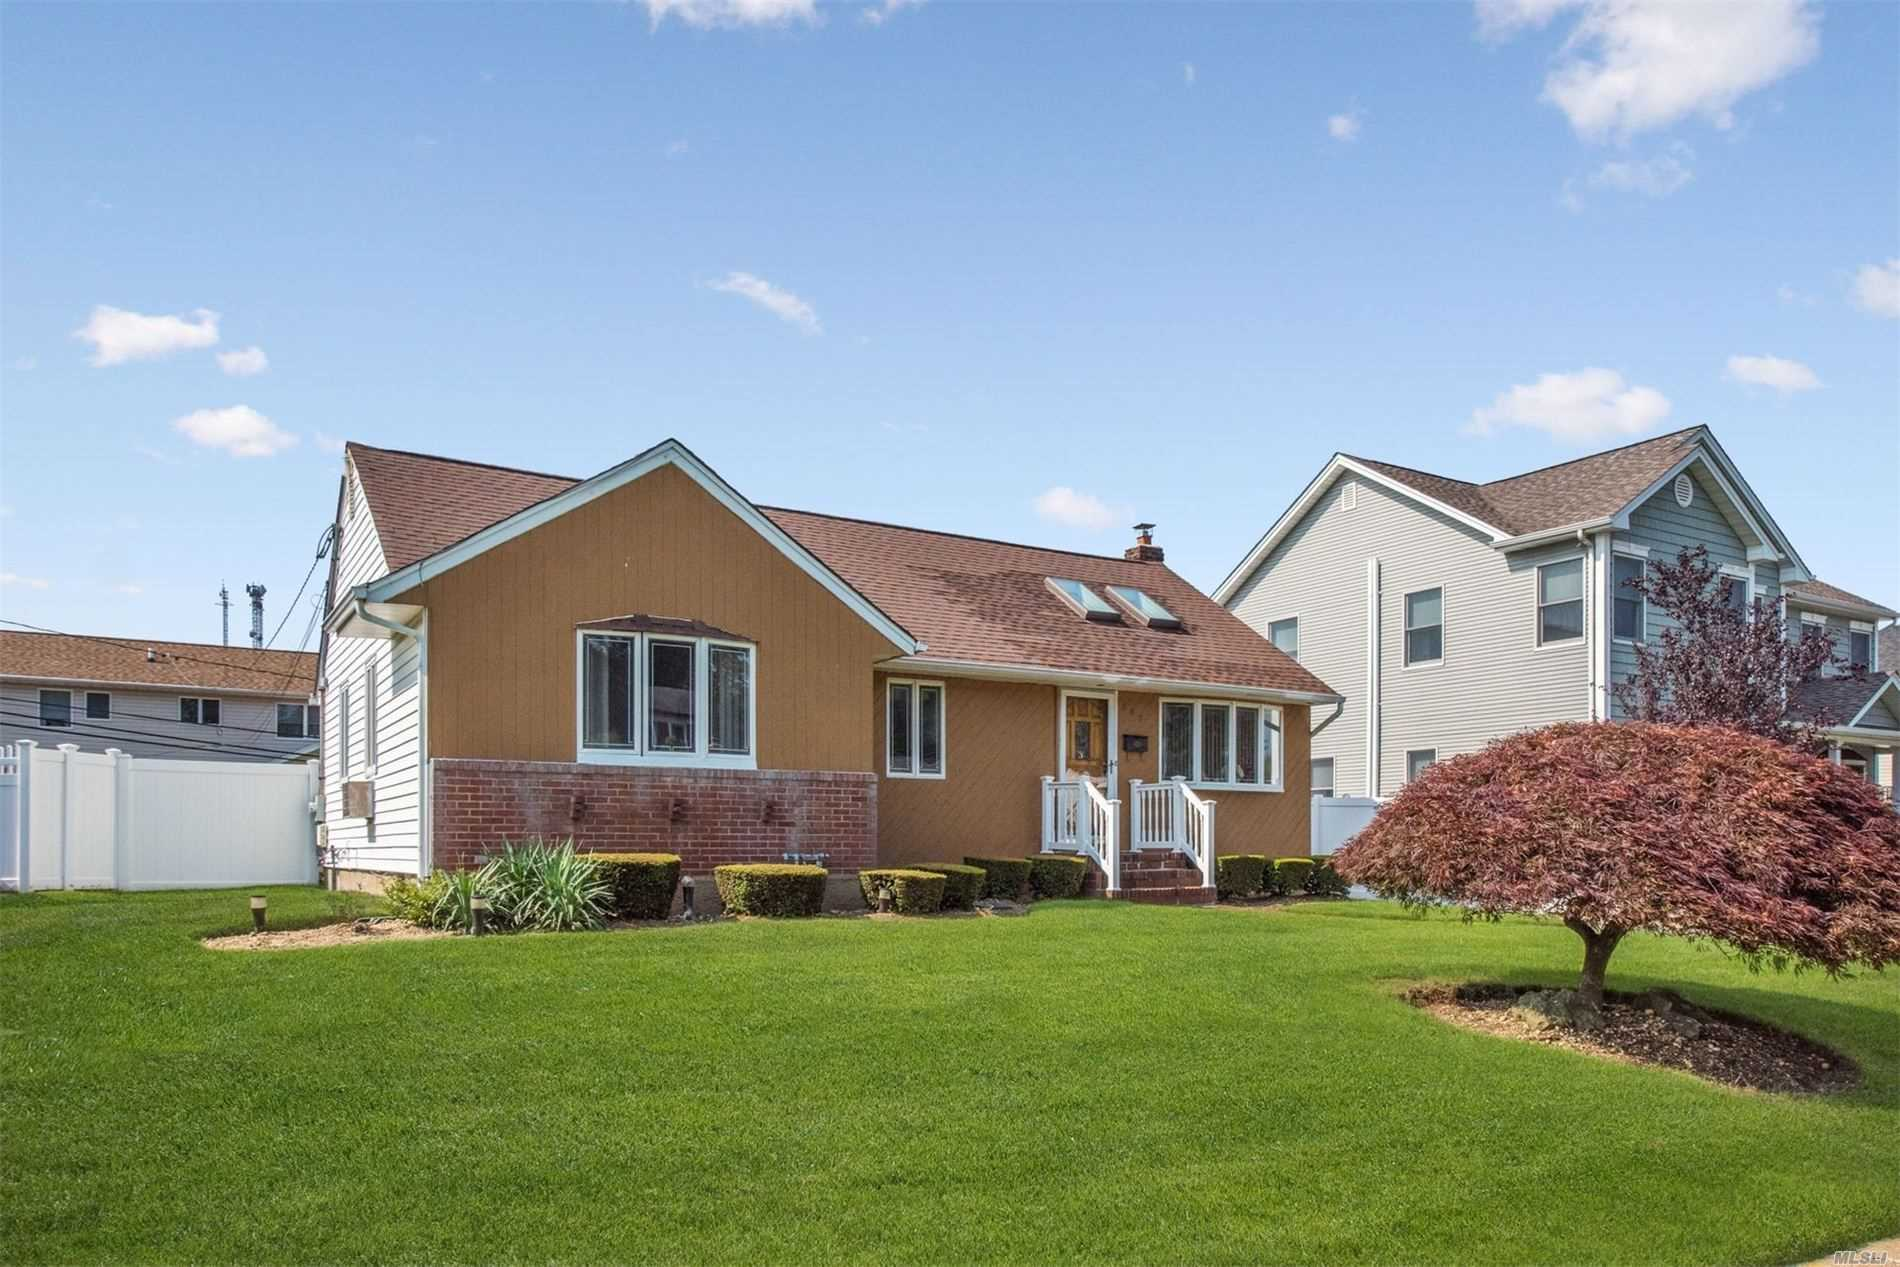 947 Brent Dr 11793 - One of Wantagh Homes for Sale